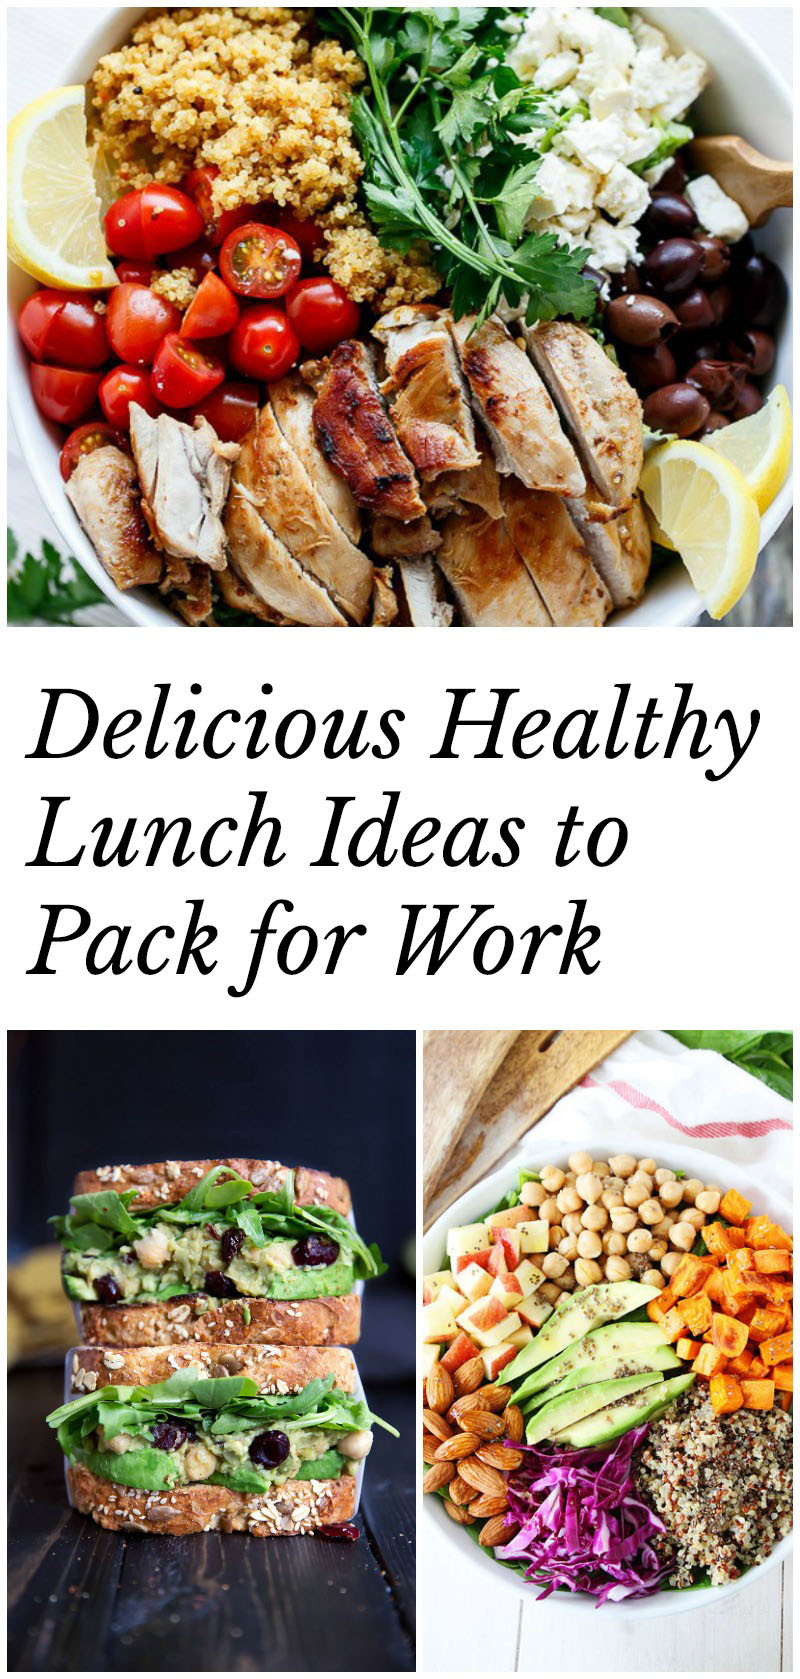 Healthy Easy Lunches For Work  Healthy Lunch Ideas to Pack for Work 40 recipes